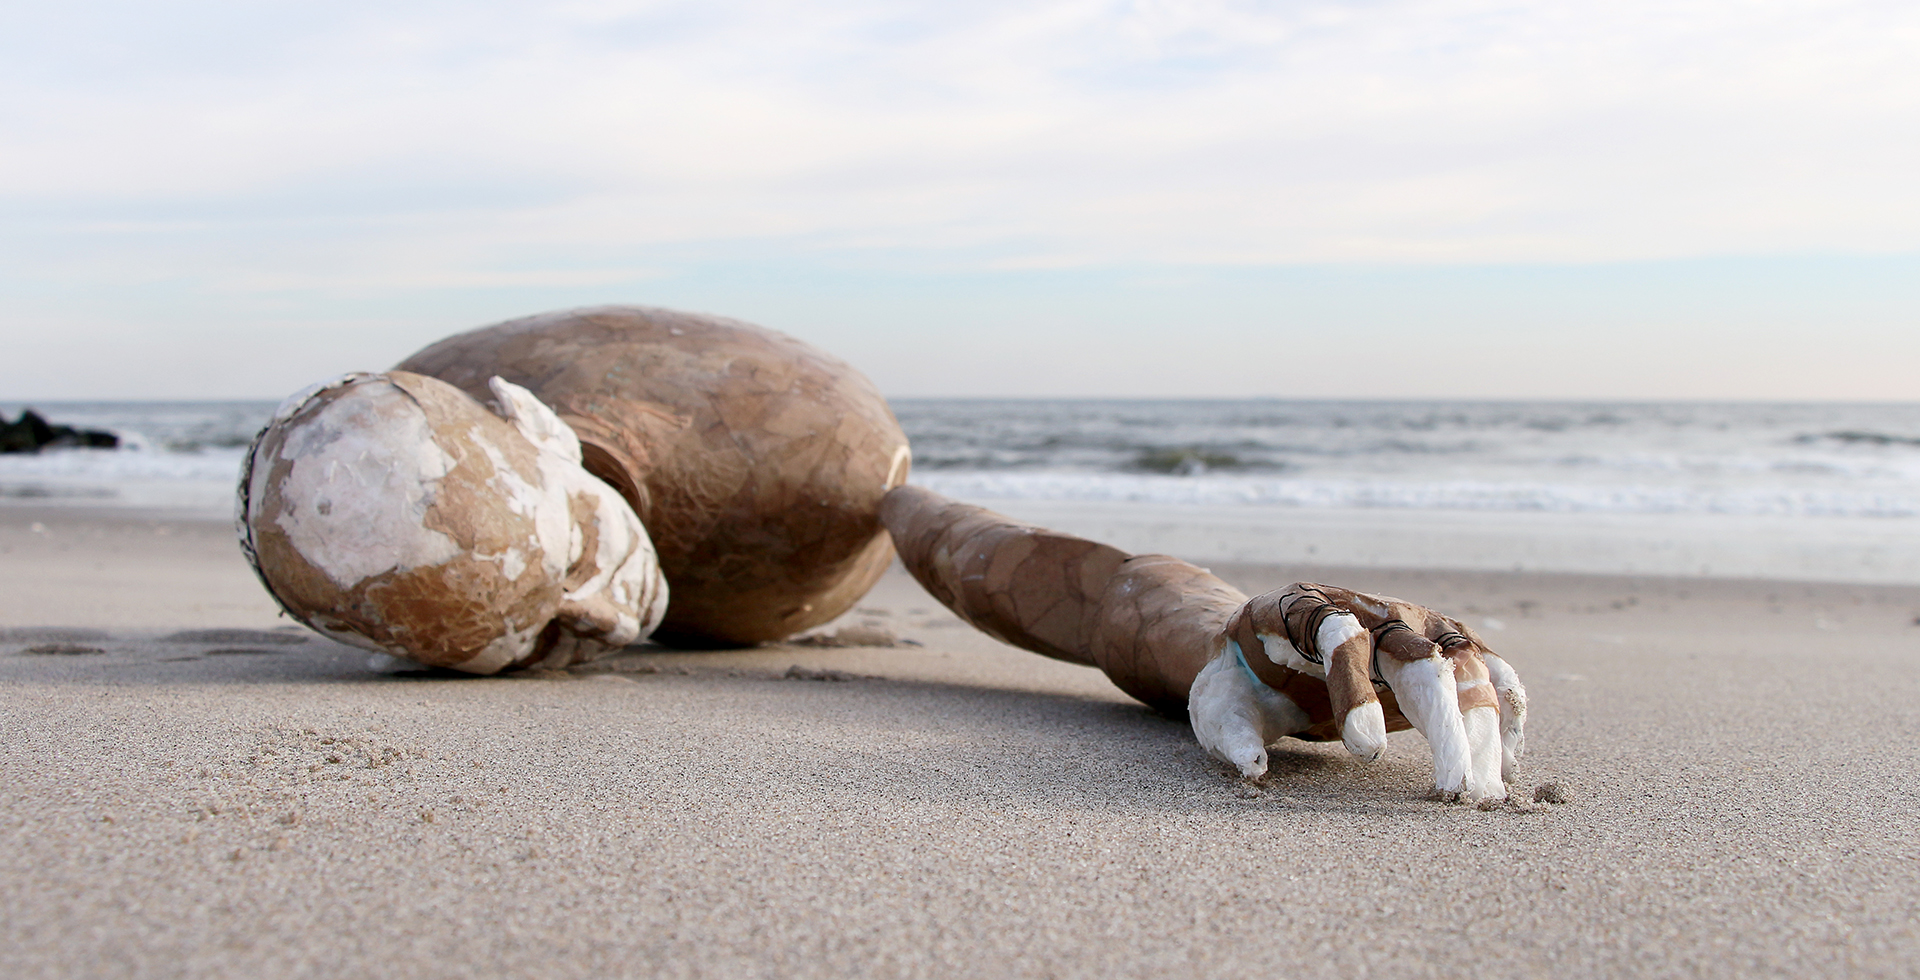 A brown puppet is lying face down on a beach with one hand outstretched toward the camera